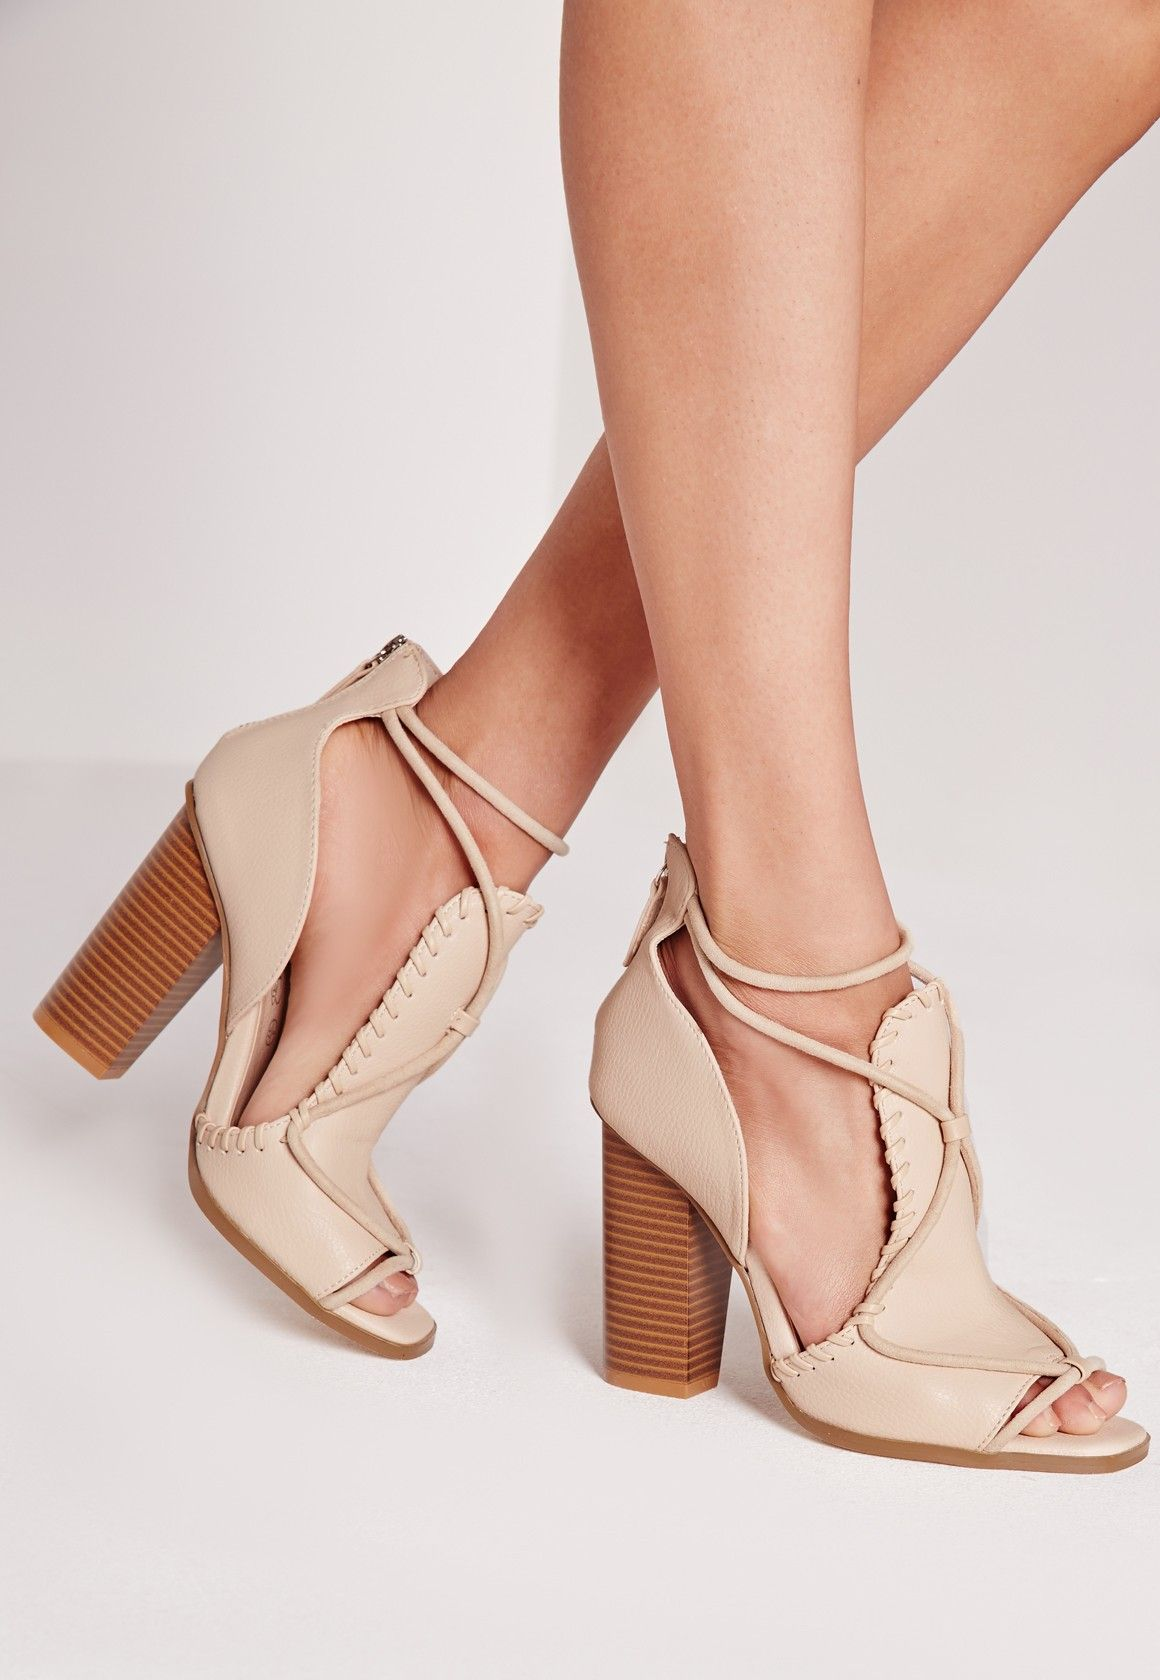 bee92152a649a Missguided - Sandales nude talon carré contrastant   Chaussures ...